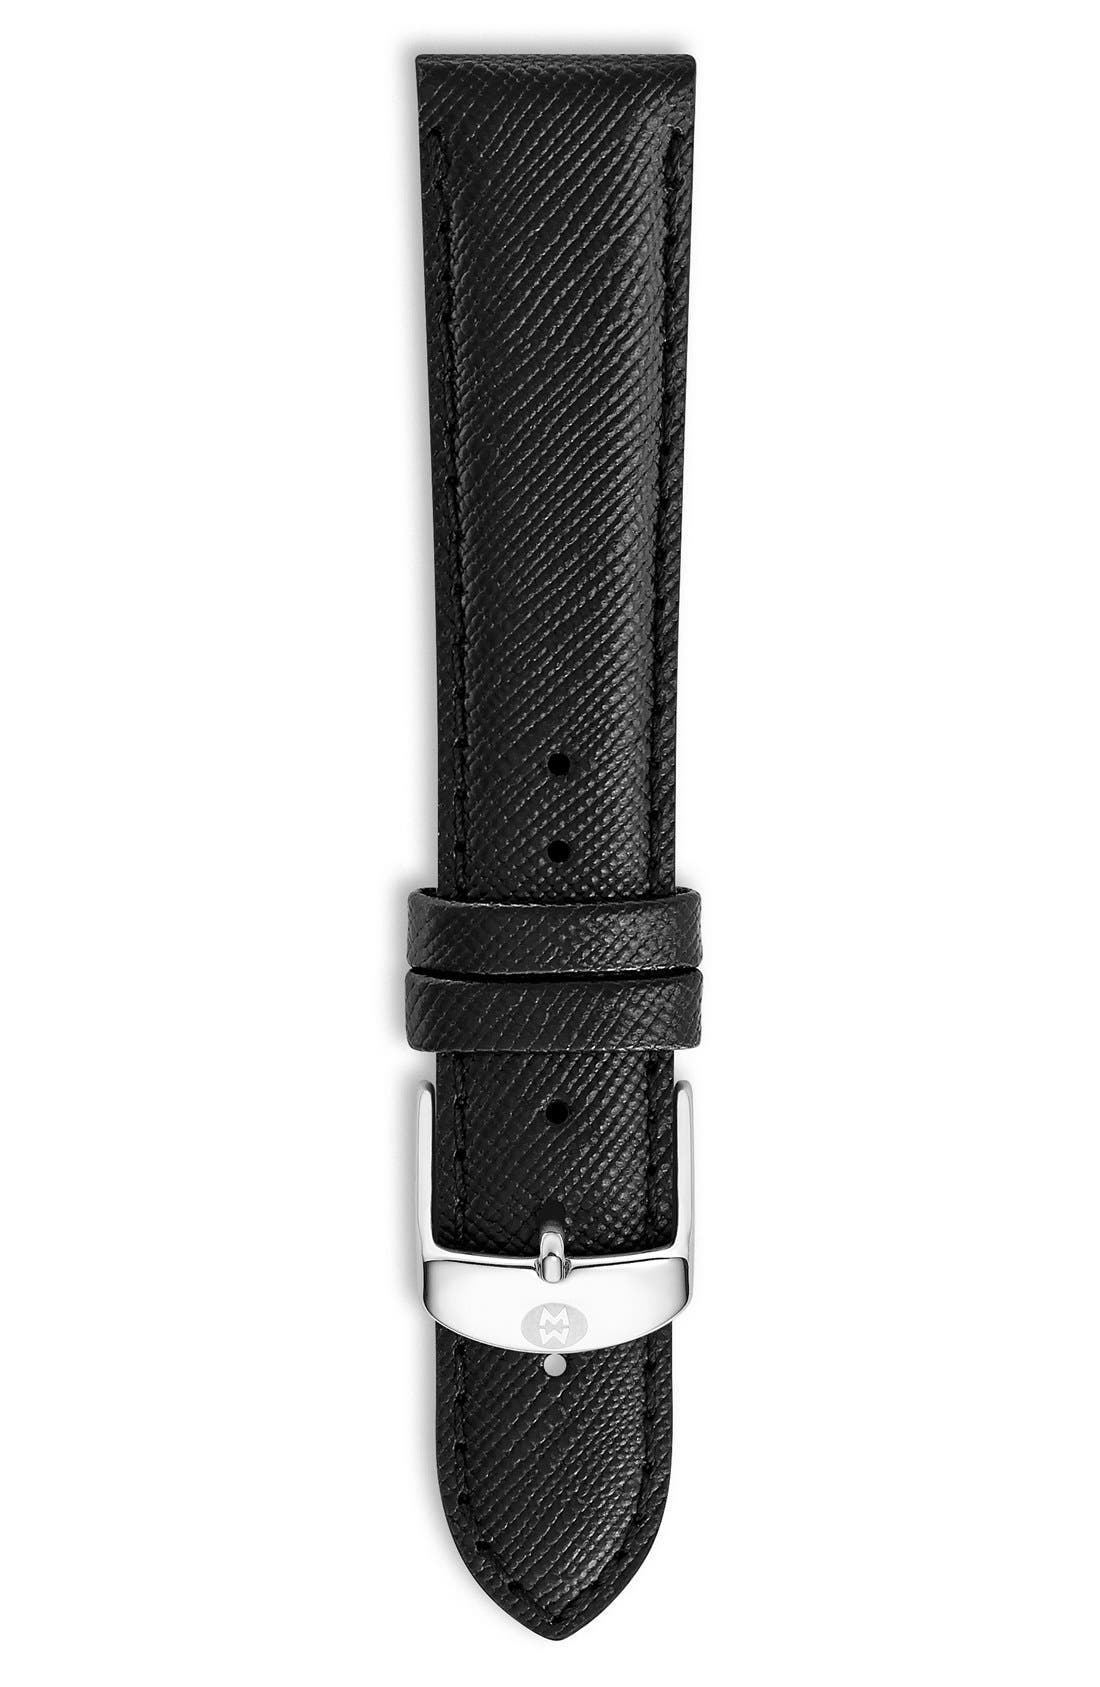 18mm Saffiano Leather Watch Strap,                             Main thumbnail 1, color,